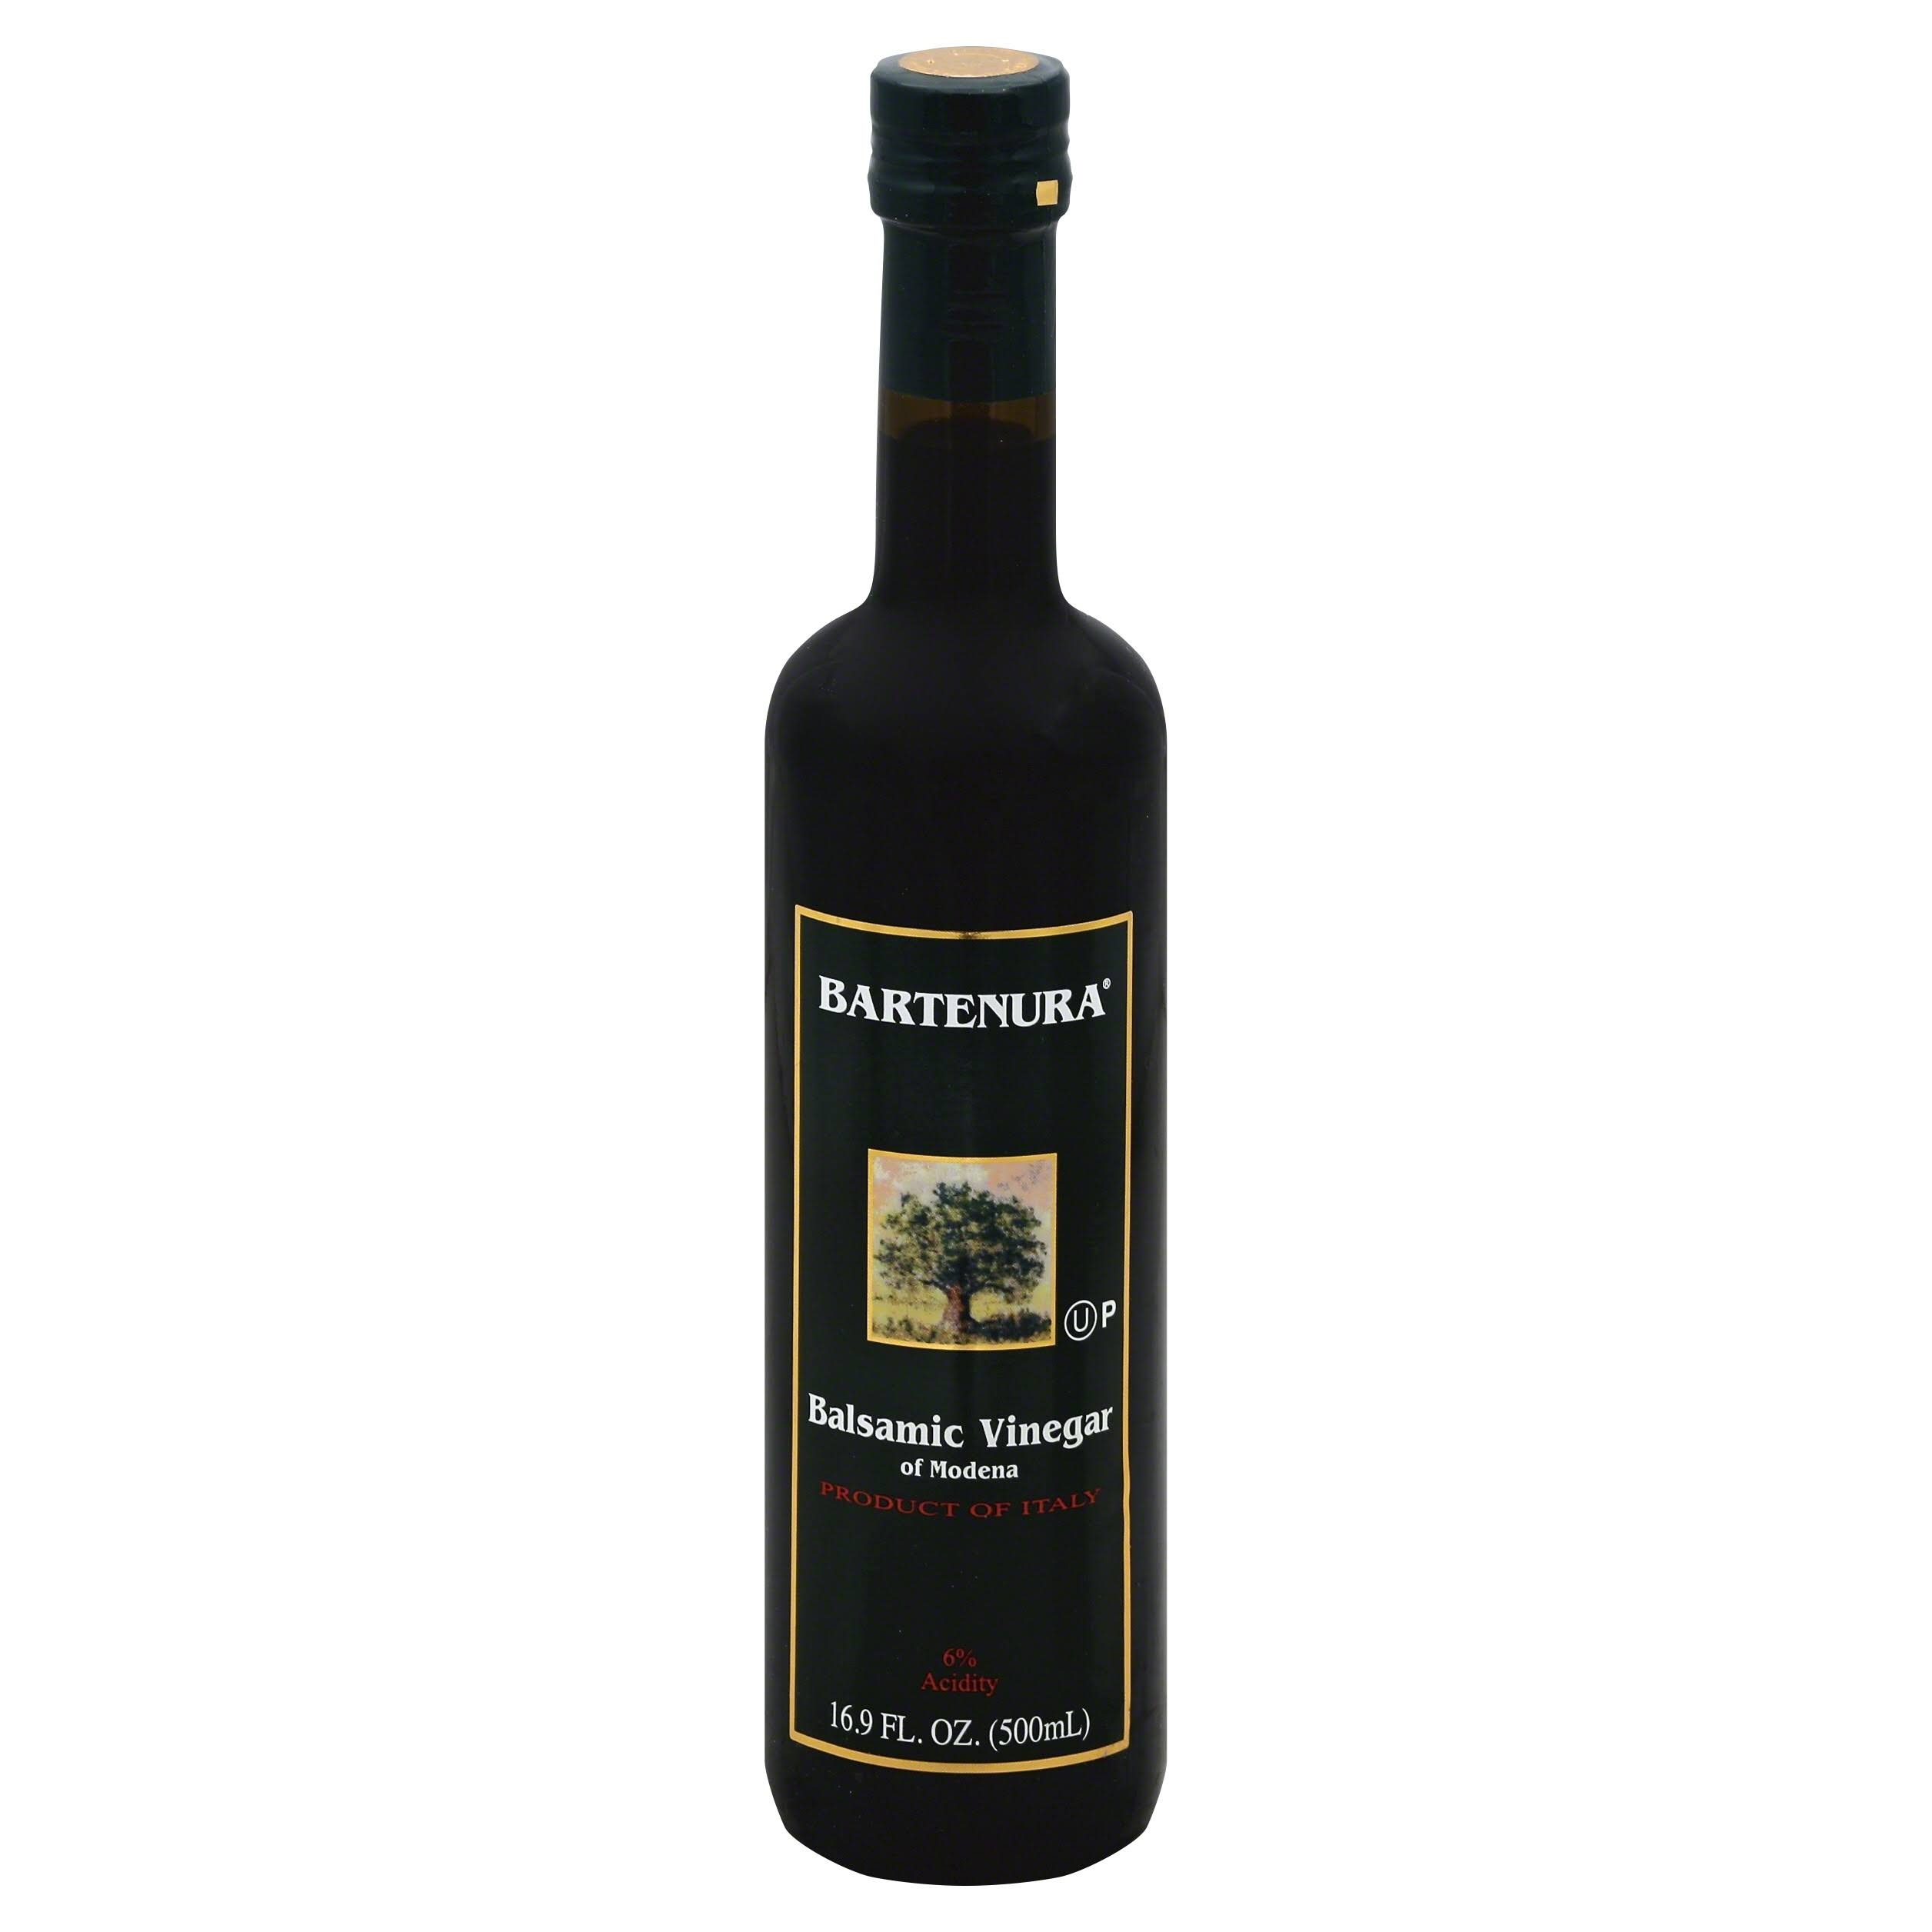 Bartenura Balsamic Vinegar - 17oz